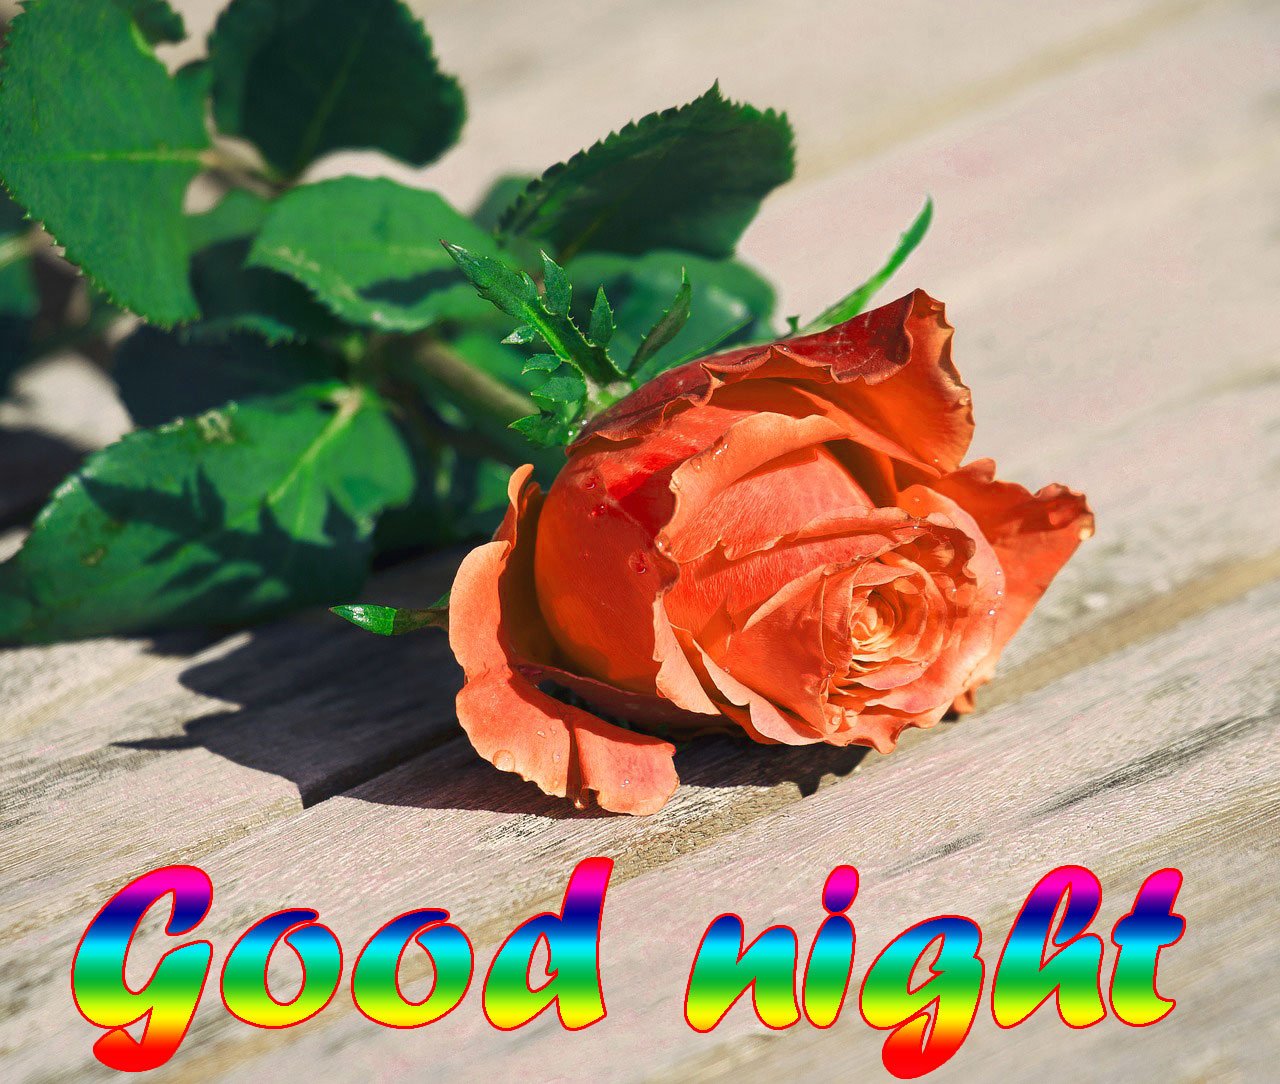 RED ROSE GOOD NIGHT WISHES IMAGES WALLPAPER PICTURES FREE DOWNLOAD